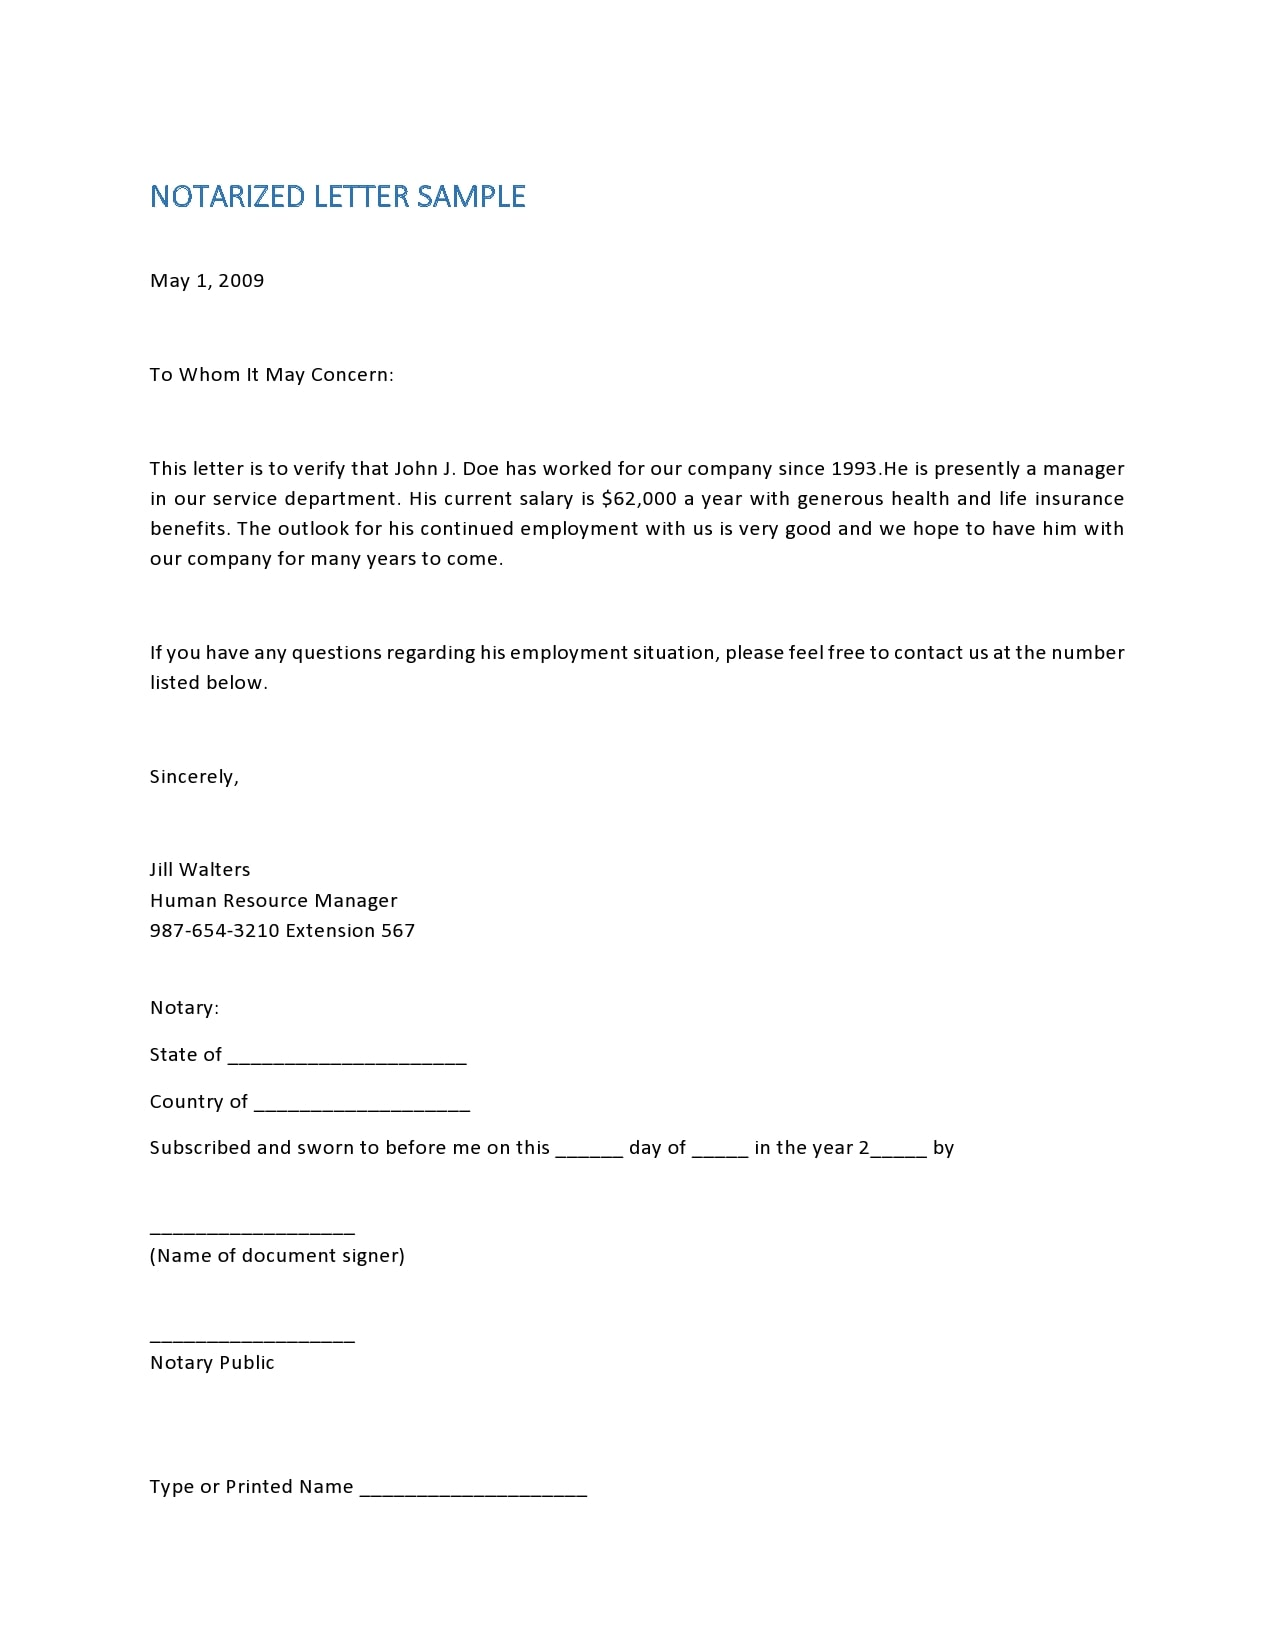 notarized letter 05